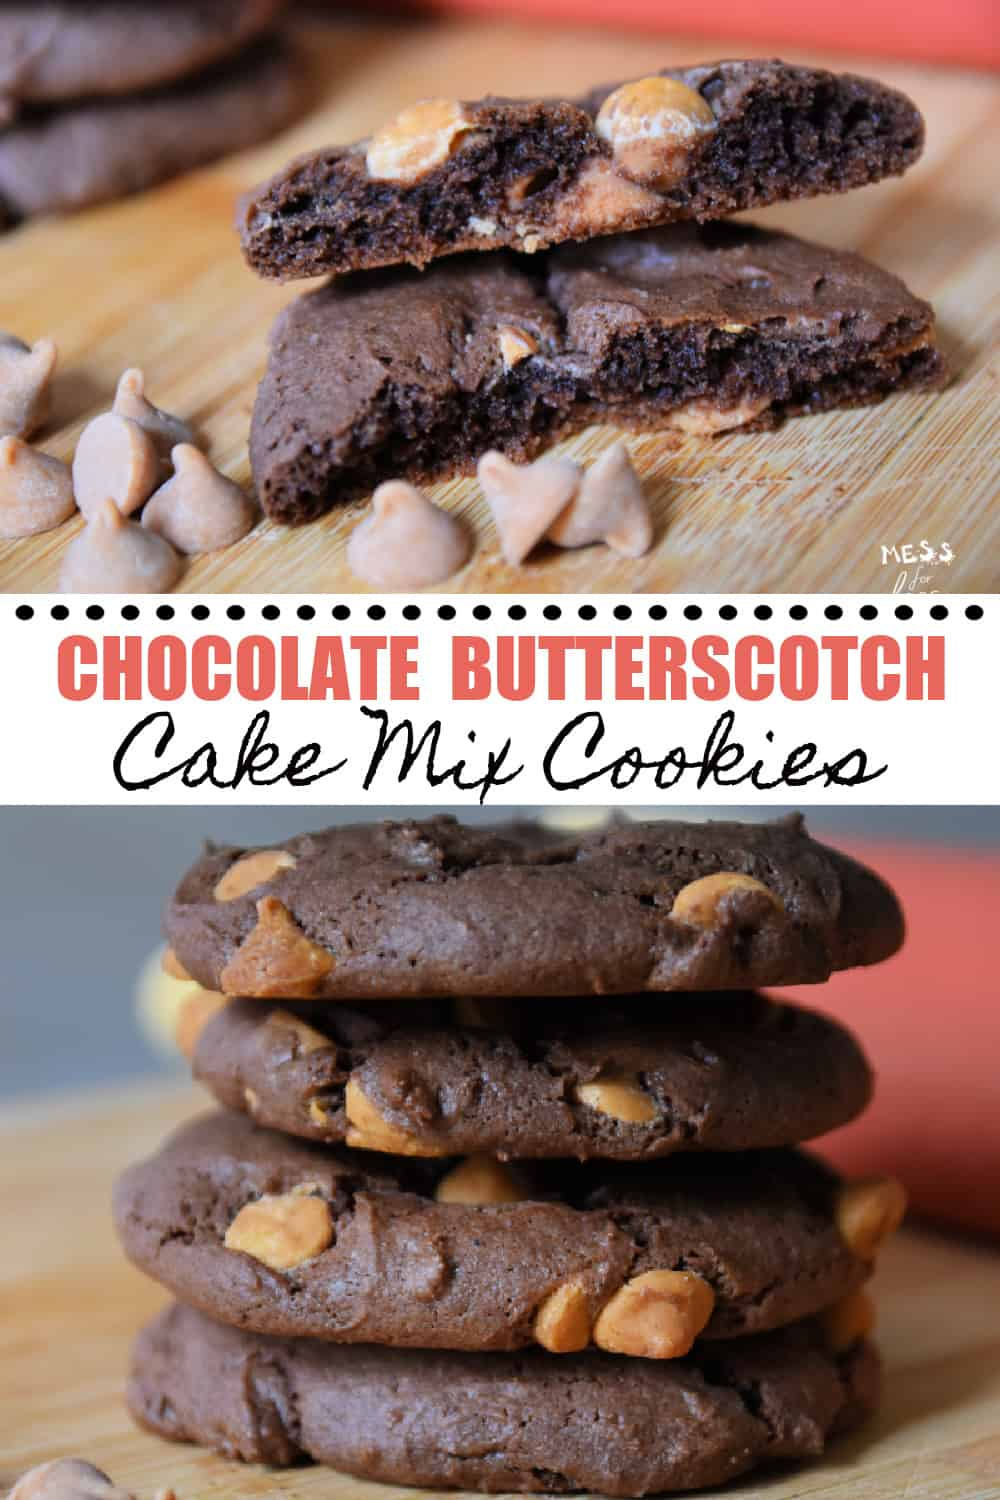 Chocolate Butterscotch Cake Mix Cookies